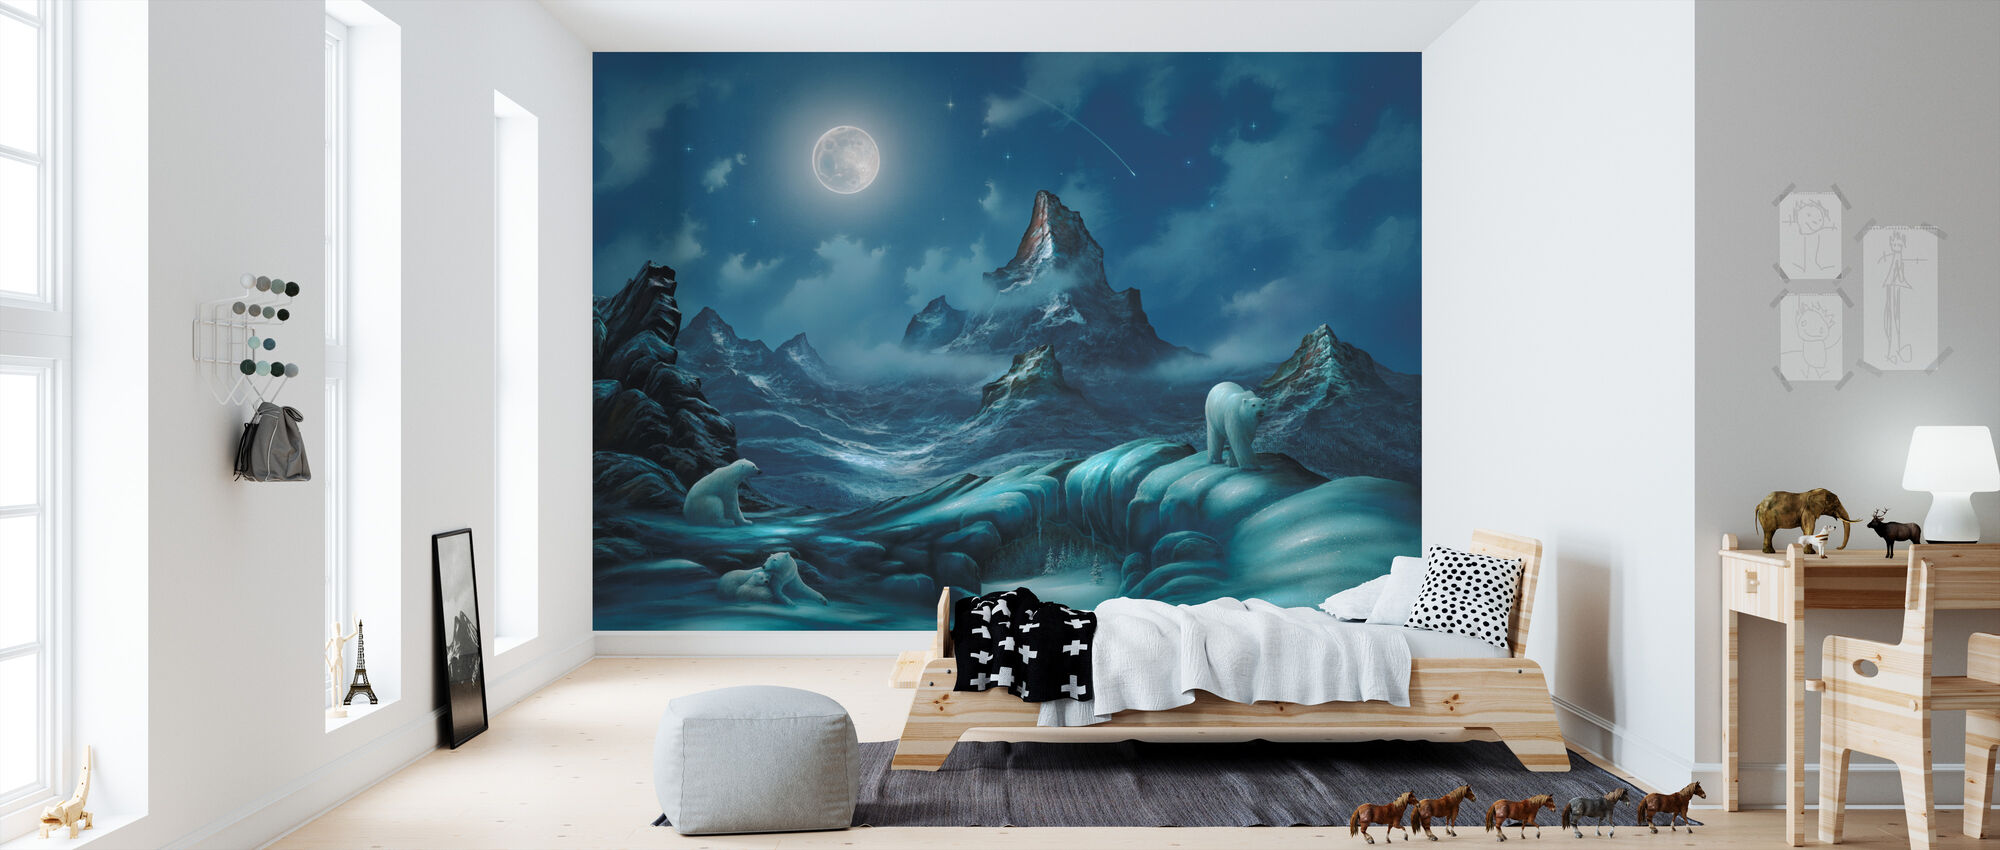 Lords of the Arctic - Wallpaper - Kids Room